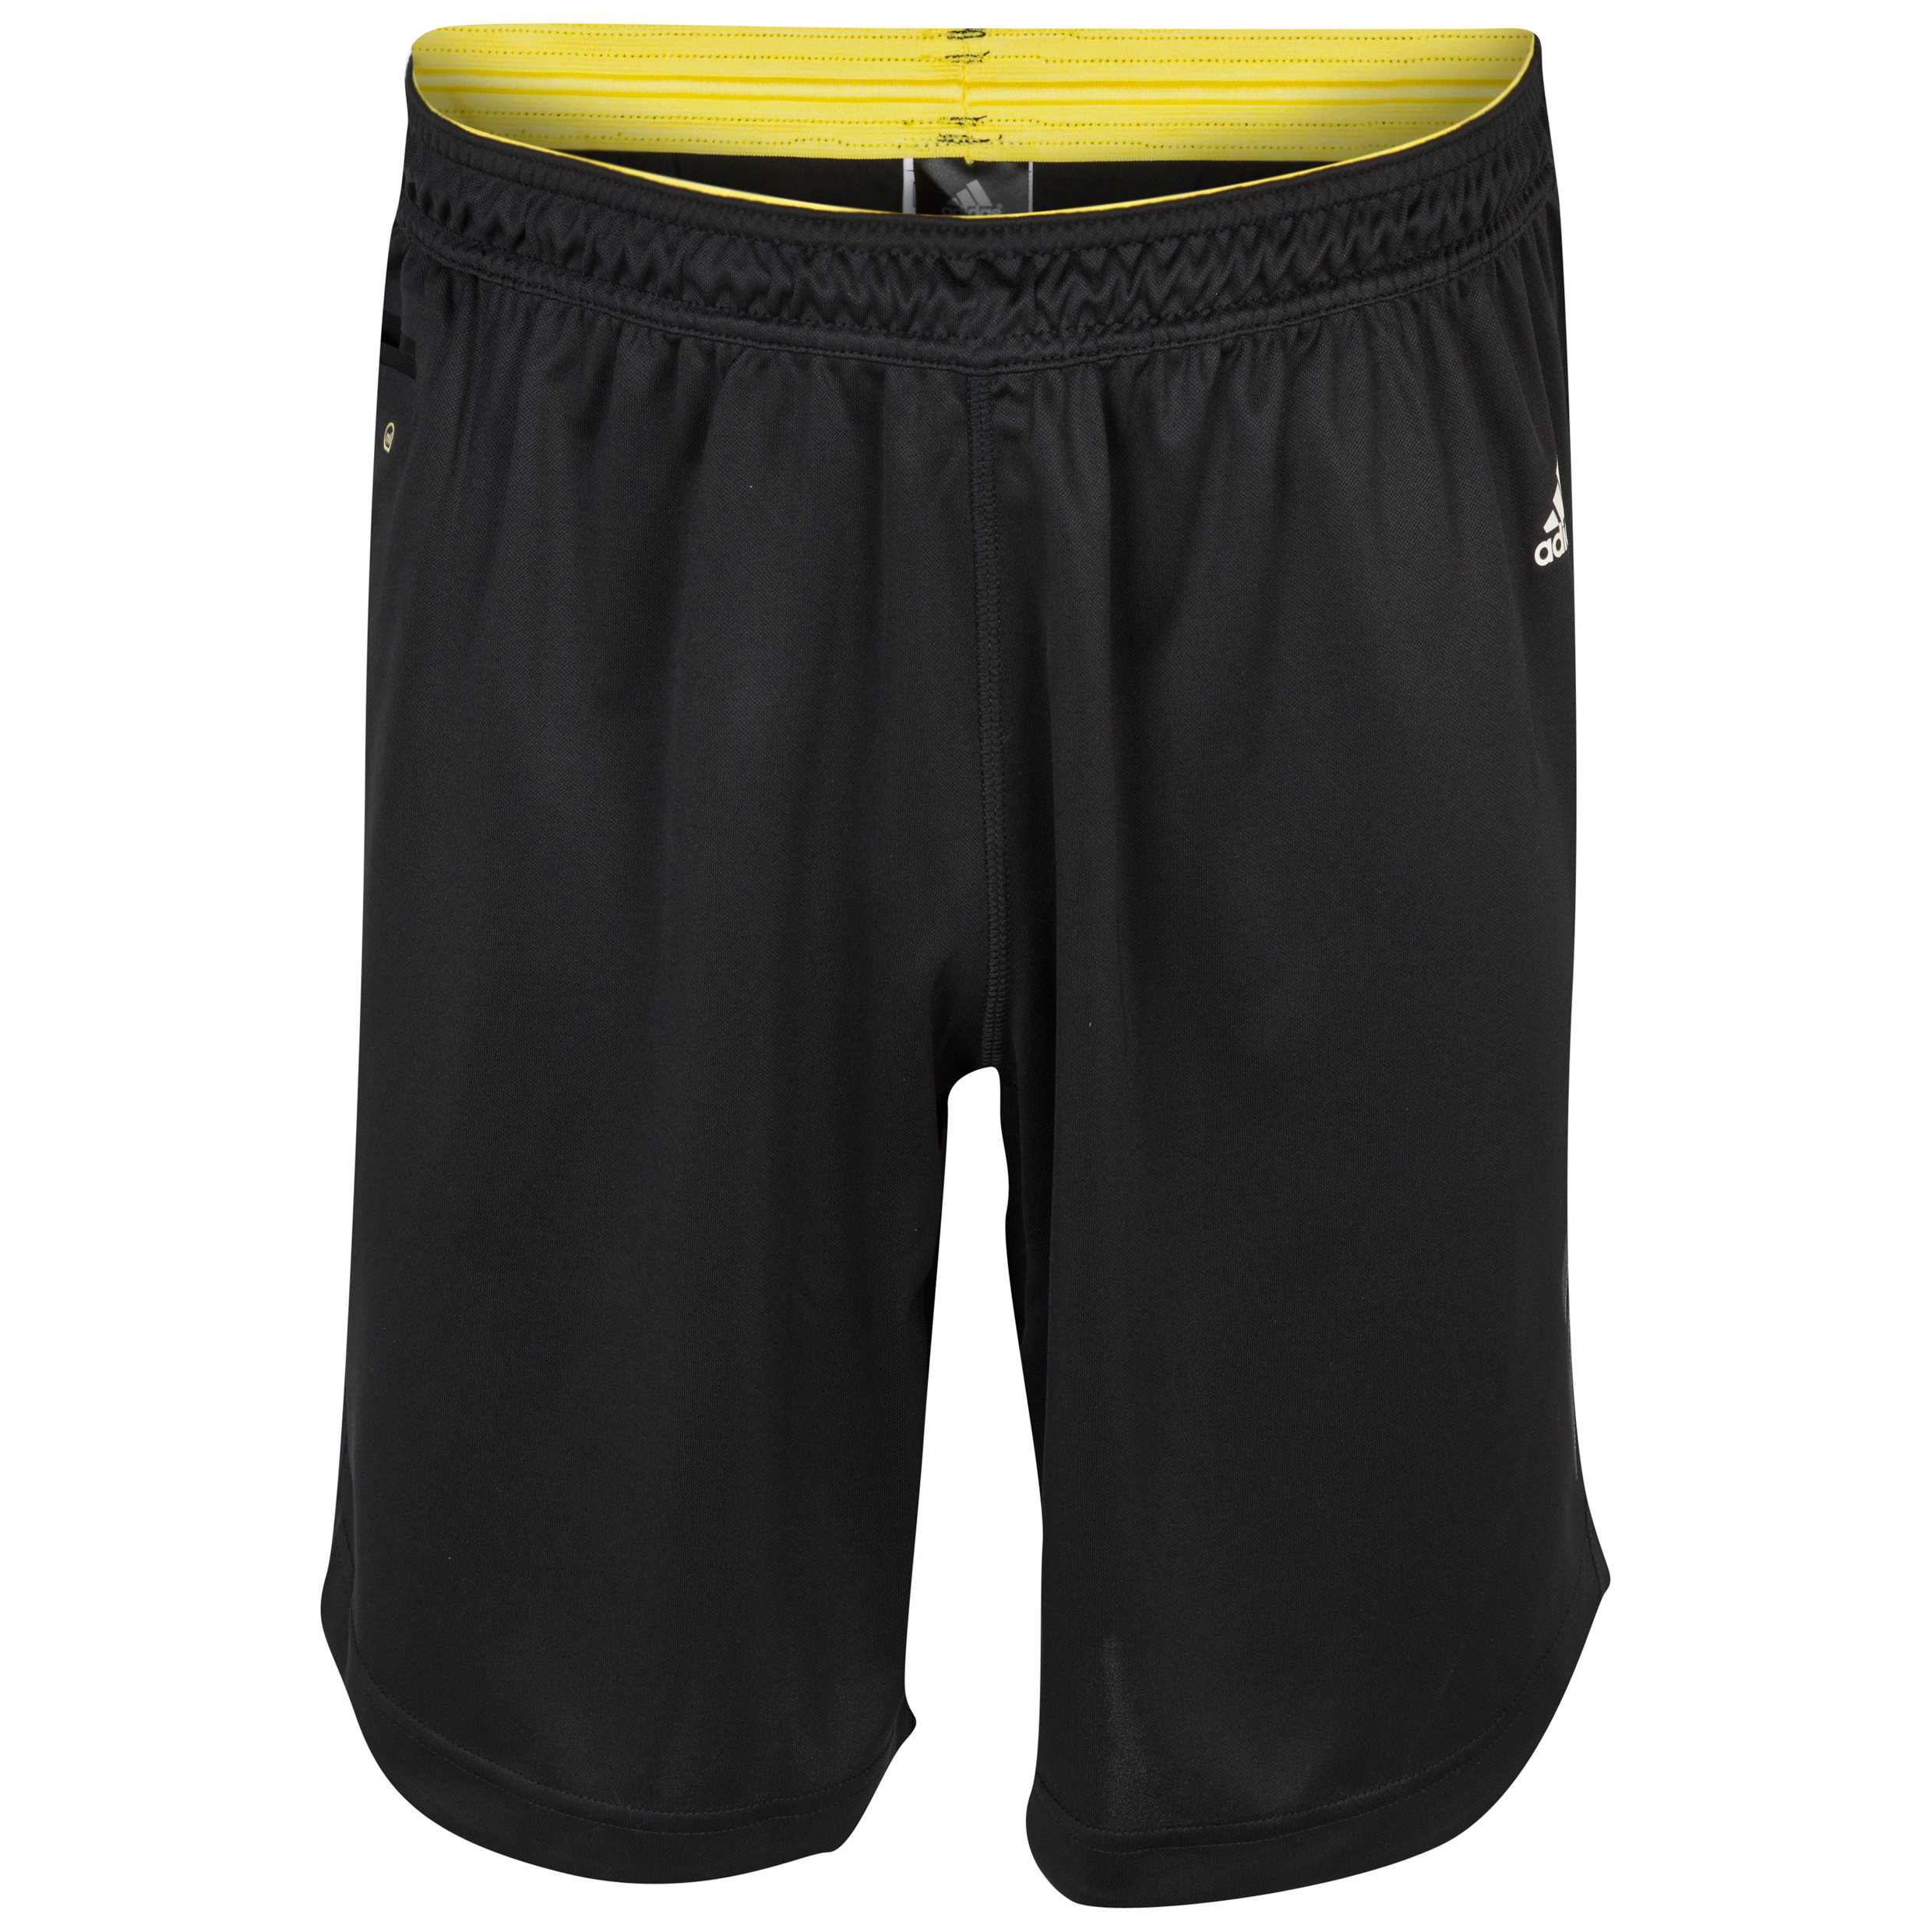 Adidas adiZero Training Short - Black/Haze Yellow